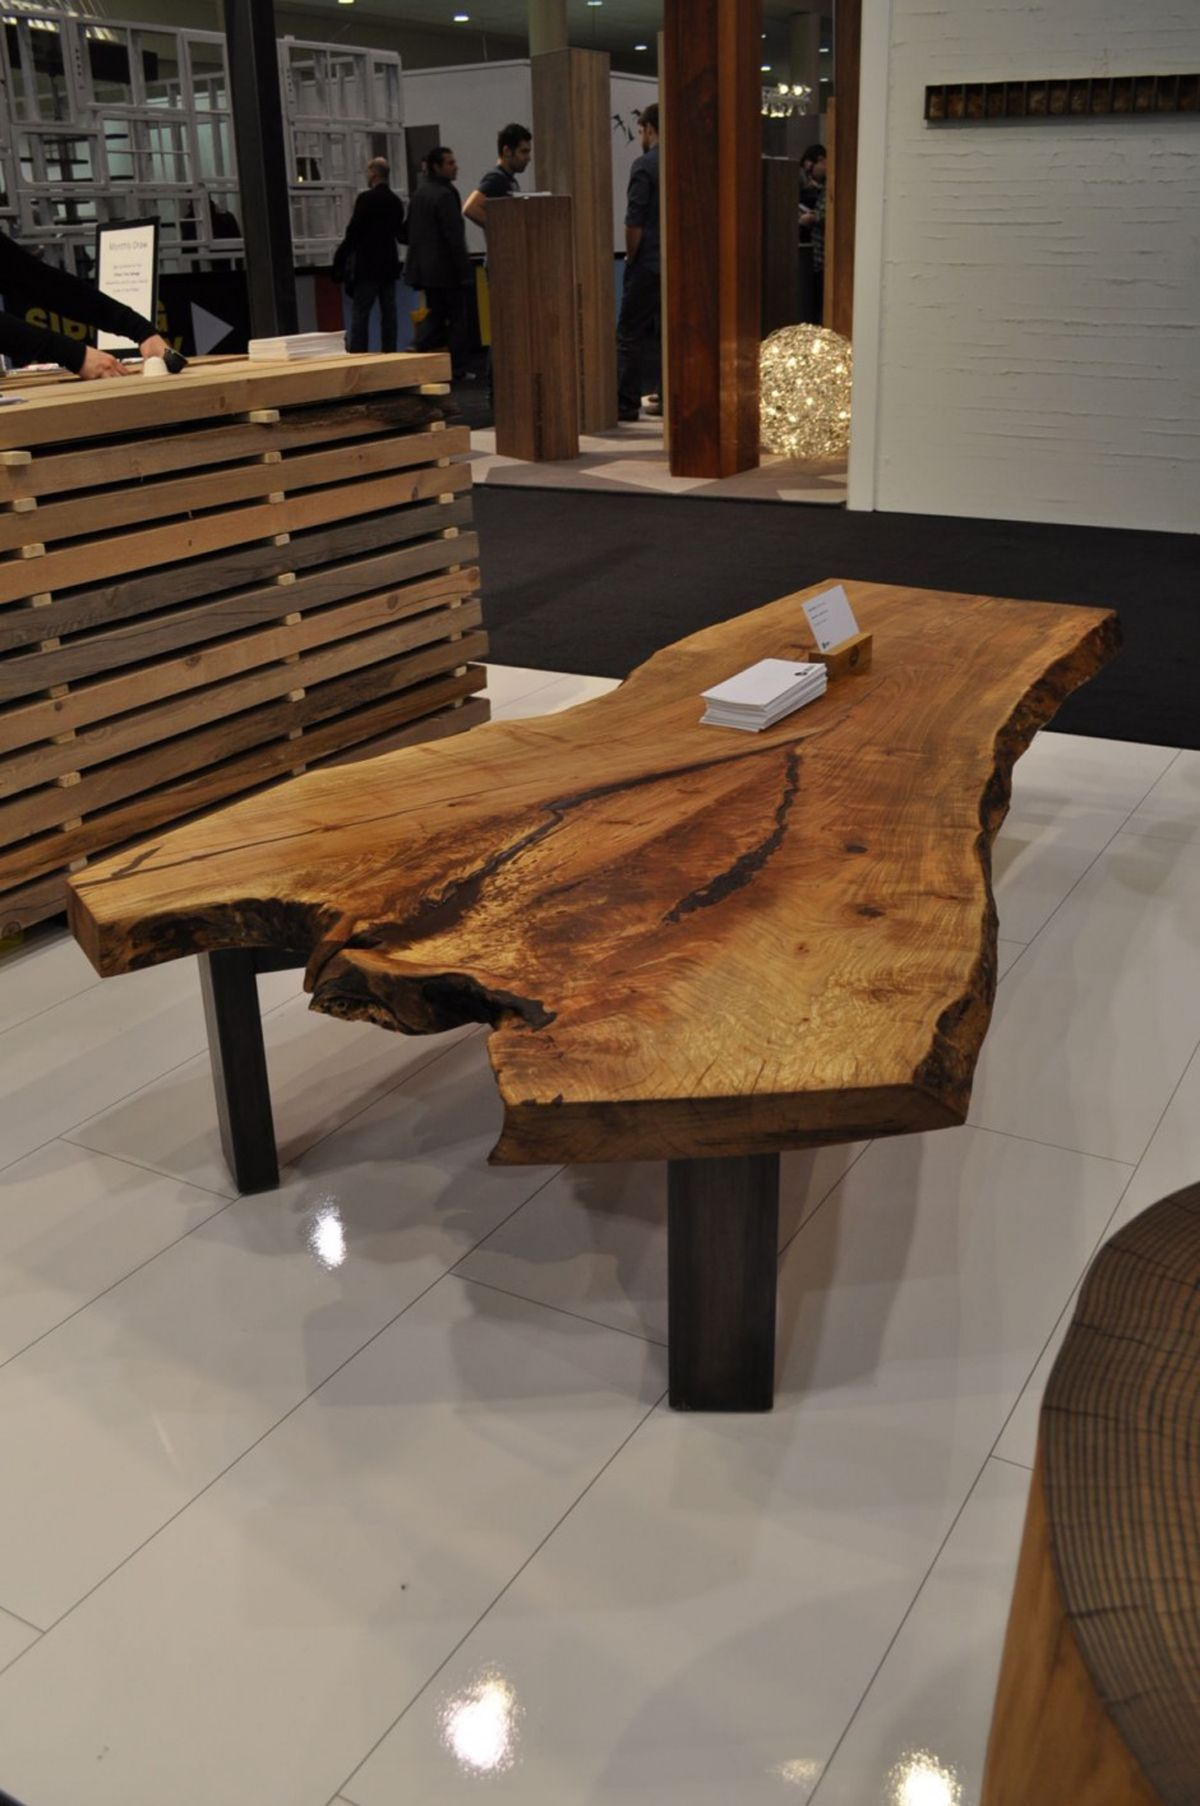 Minimalist natural wooden salvaged table